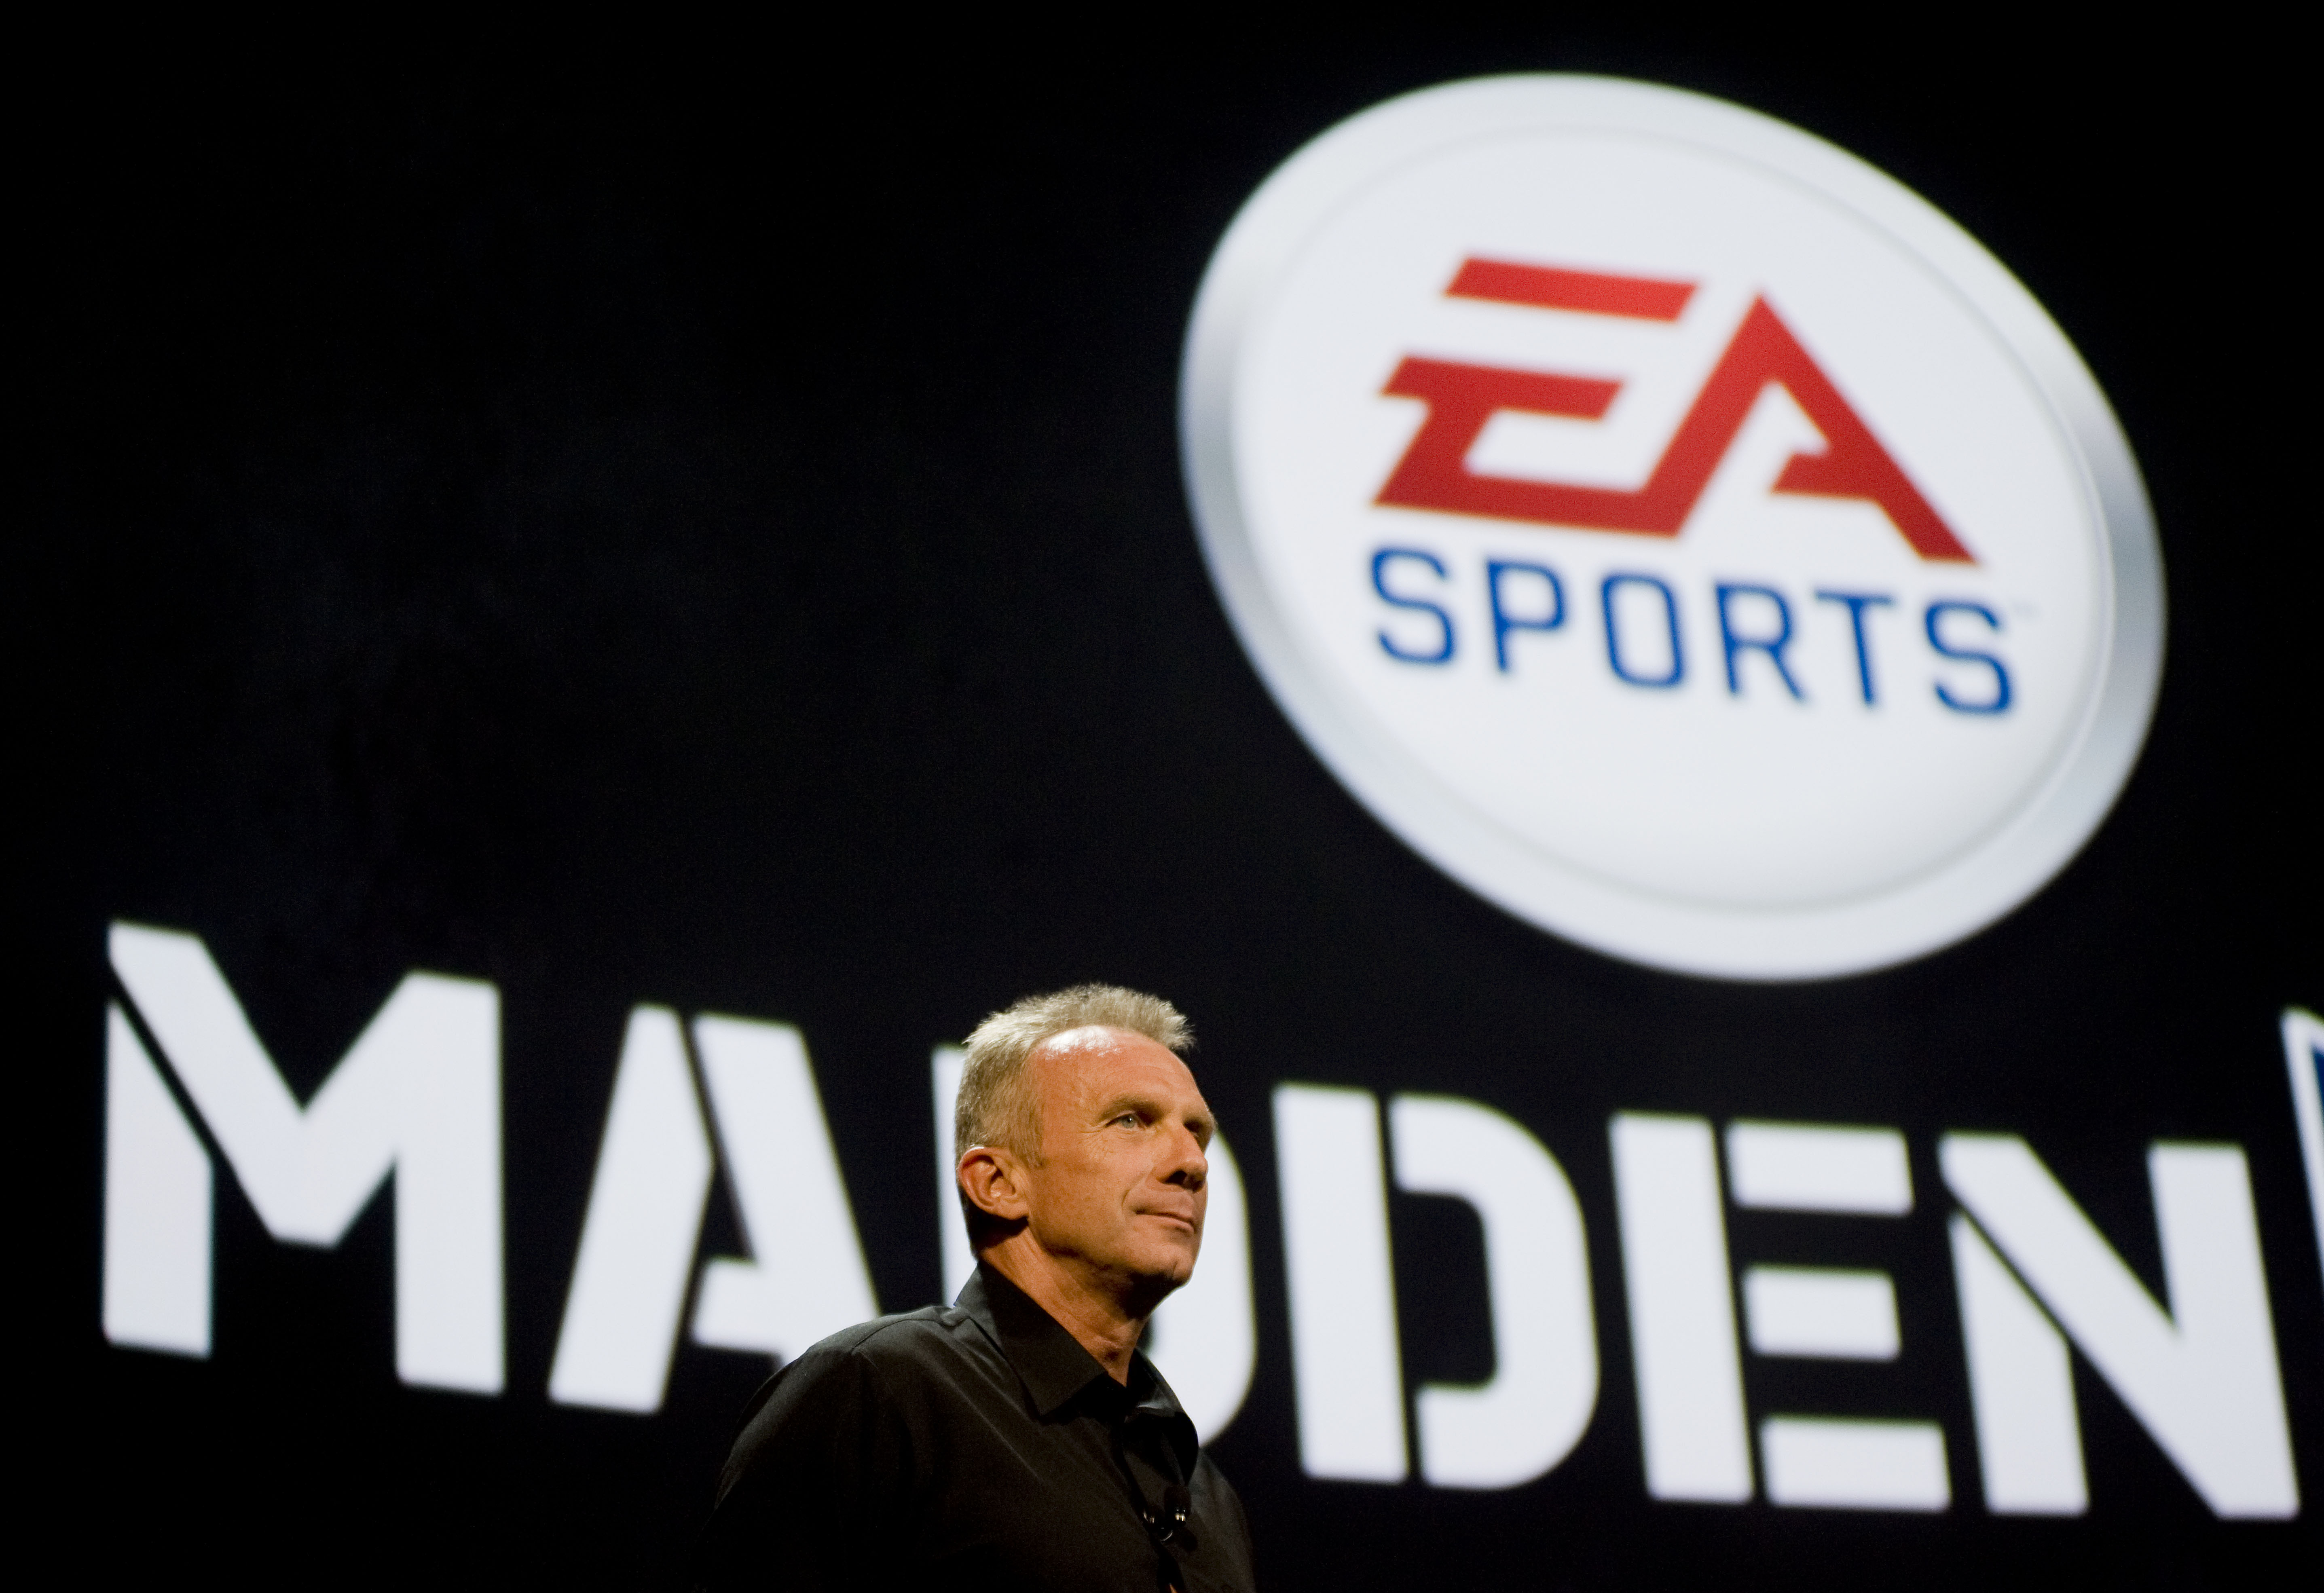 Former NFL quarterback Joe Montana helps introduce Electronic Arts Sports (EA Sports) new  Madden 2011  game at an EA press briefing ahead of the Electronic Entertainment Expo (E3) at the Orpheum Theater June 14, 2010 in Los Angeles, California.